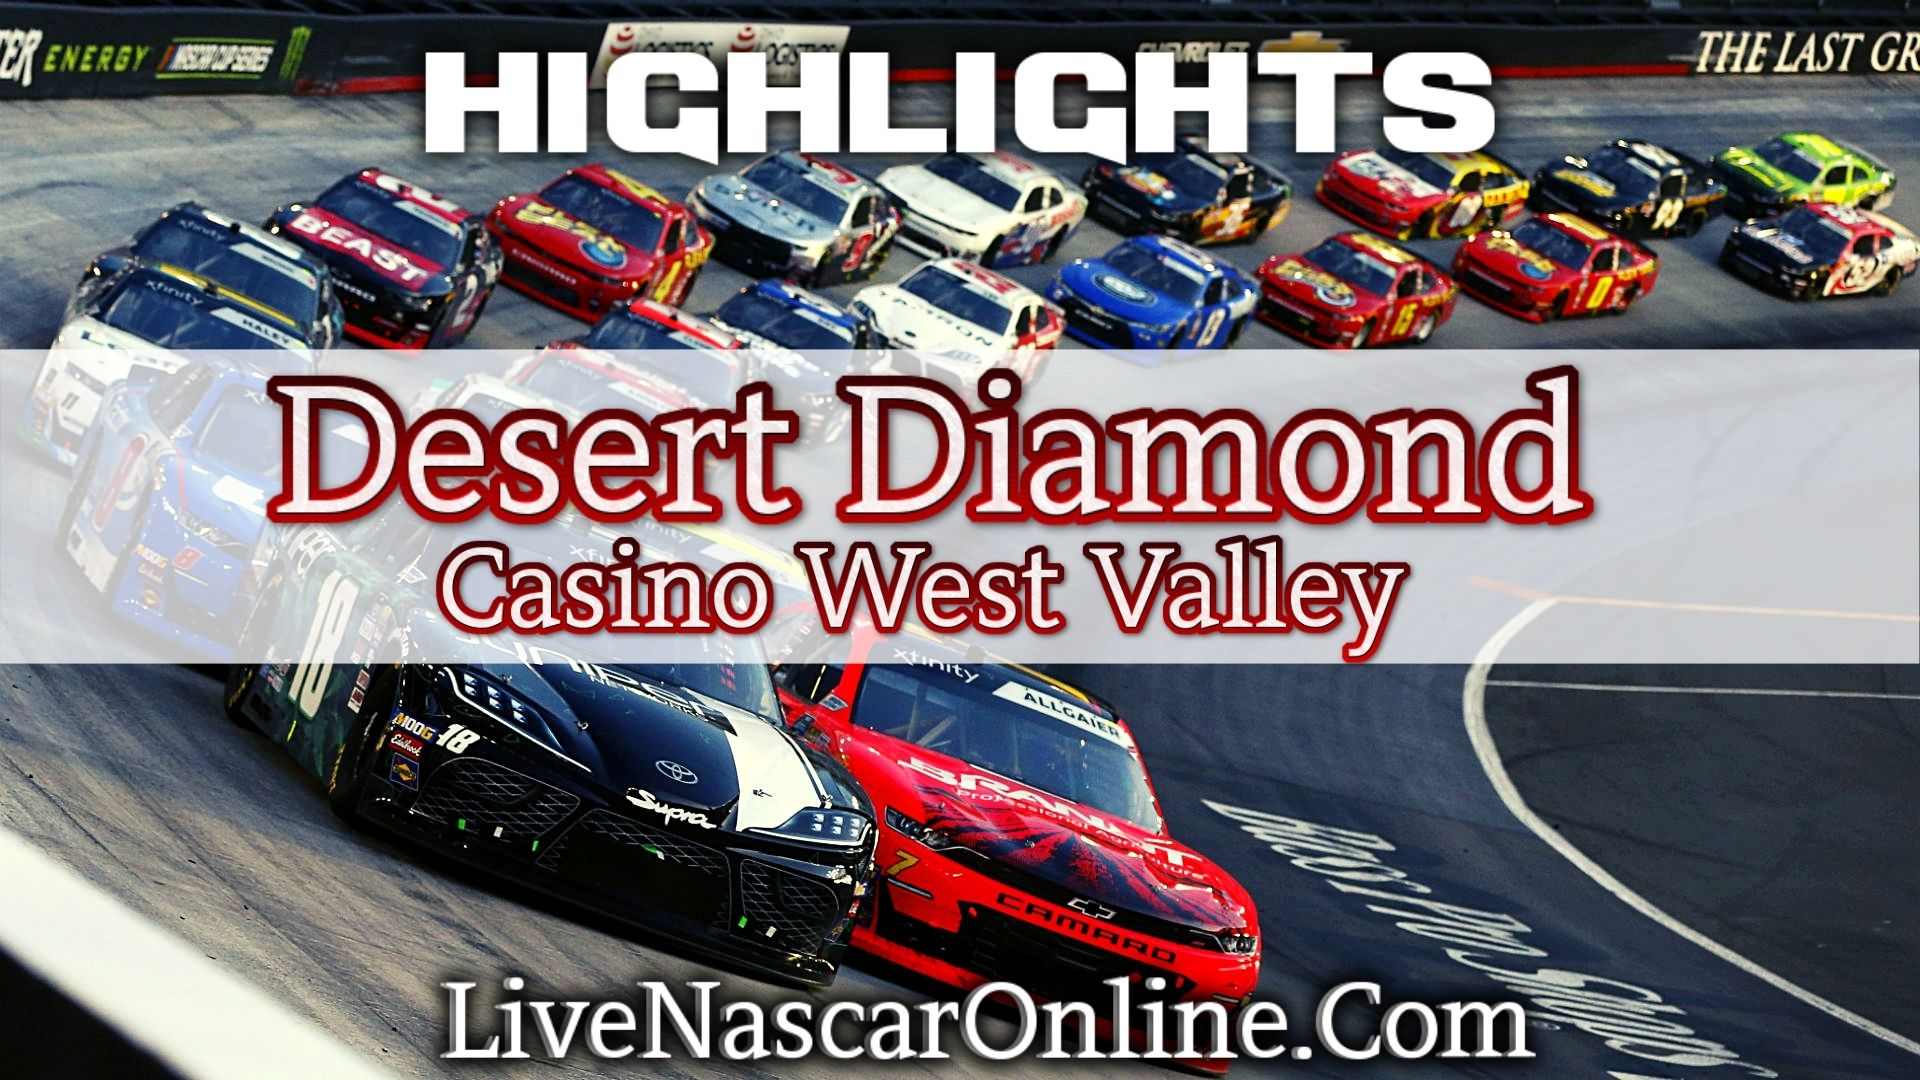 Desert Diamond Casino West Valley 200 Highlights 2020